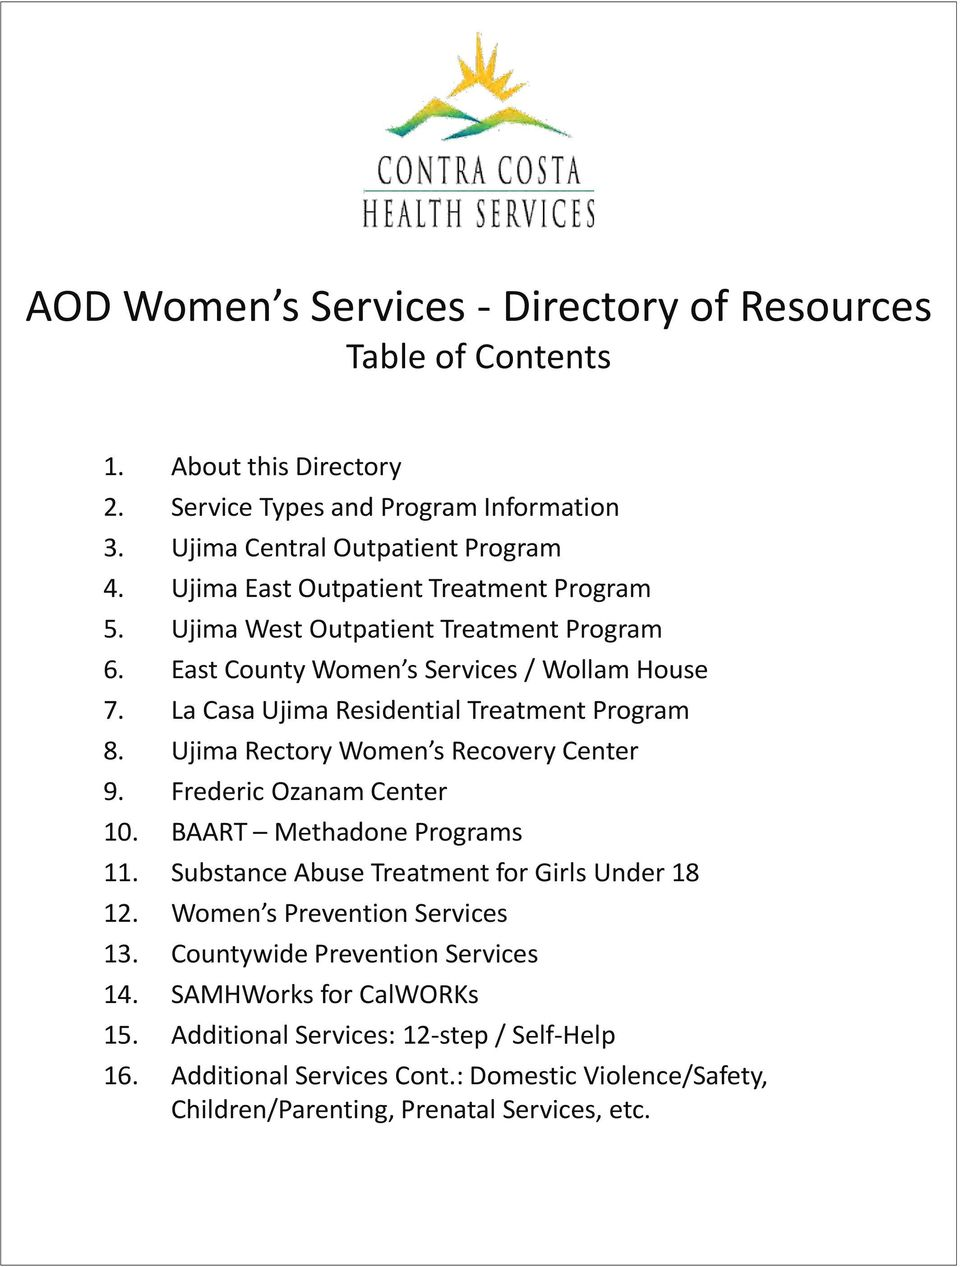 Ujima Rectory Women s Recovery Center 9. Frederic Ozanam Center 10. BAART Methadone Programs 11. Substance Abuse Treatment for Girls Under 18 12. Women s Prevention Services 13.